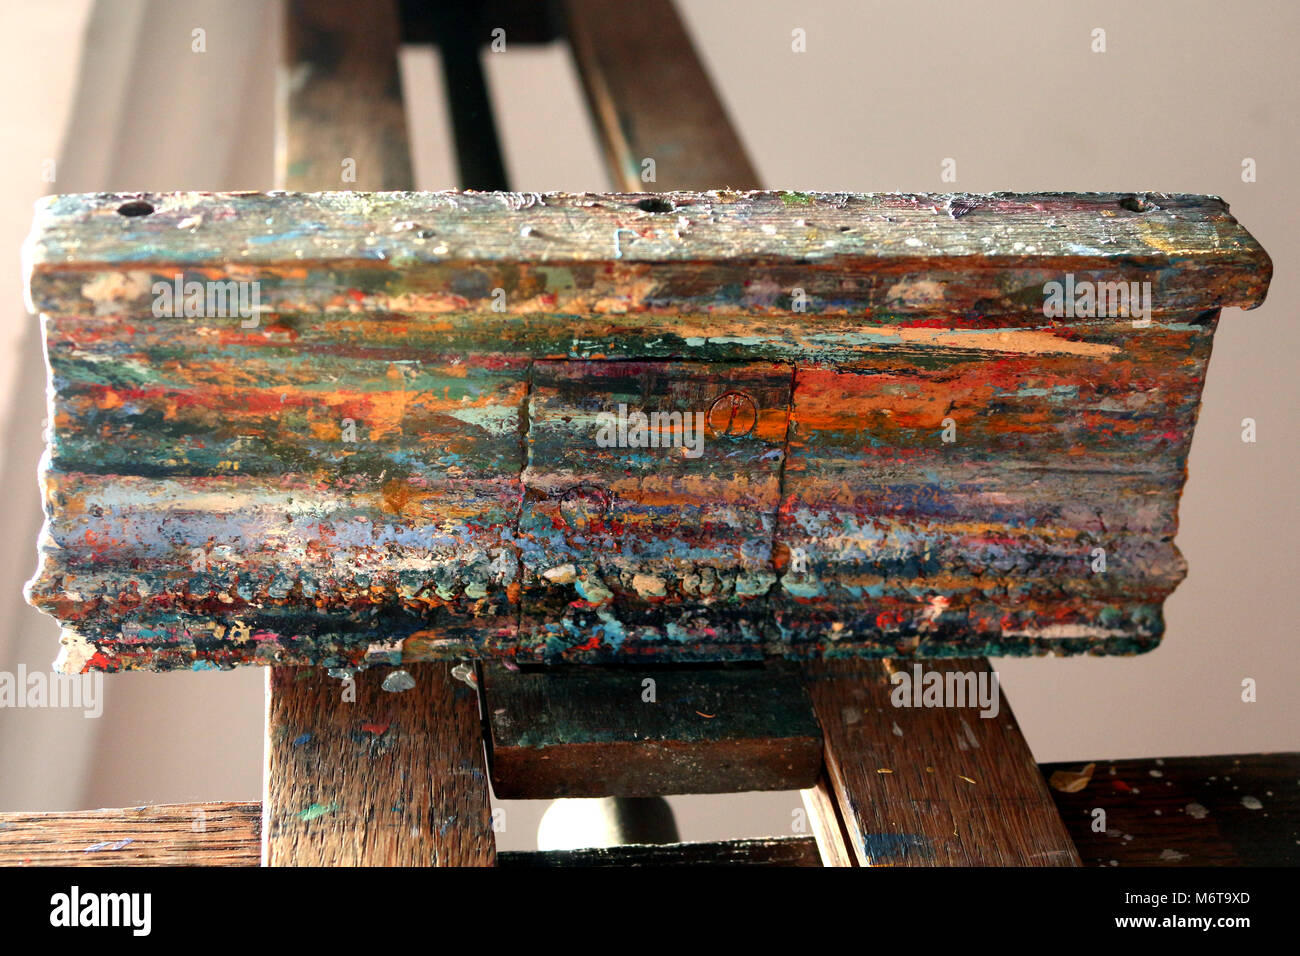 Artists easel spattered with paint after decades of work - Stock Image